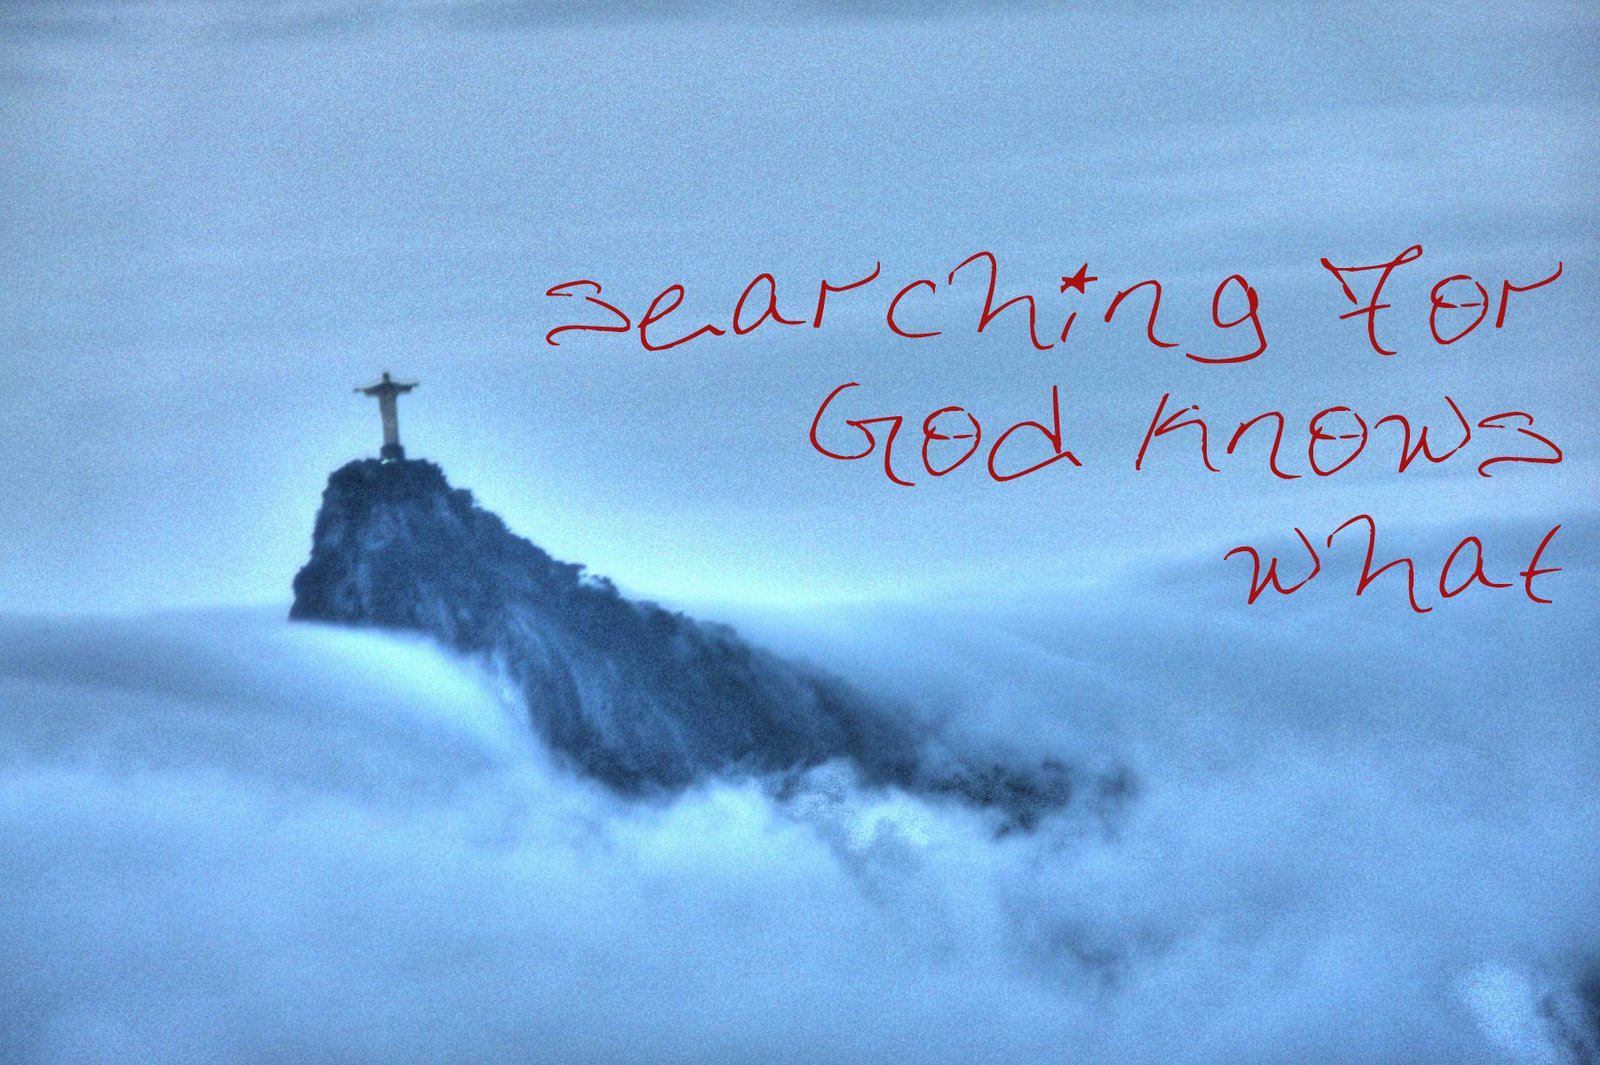 searching.for.god.knows.what